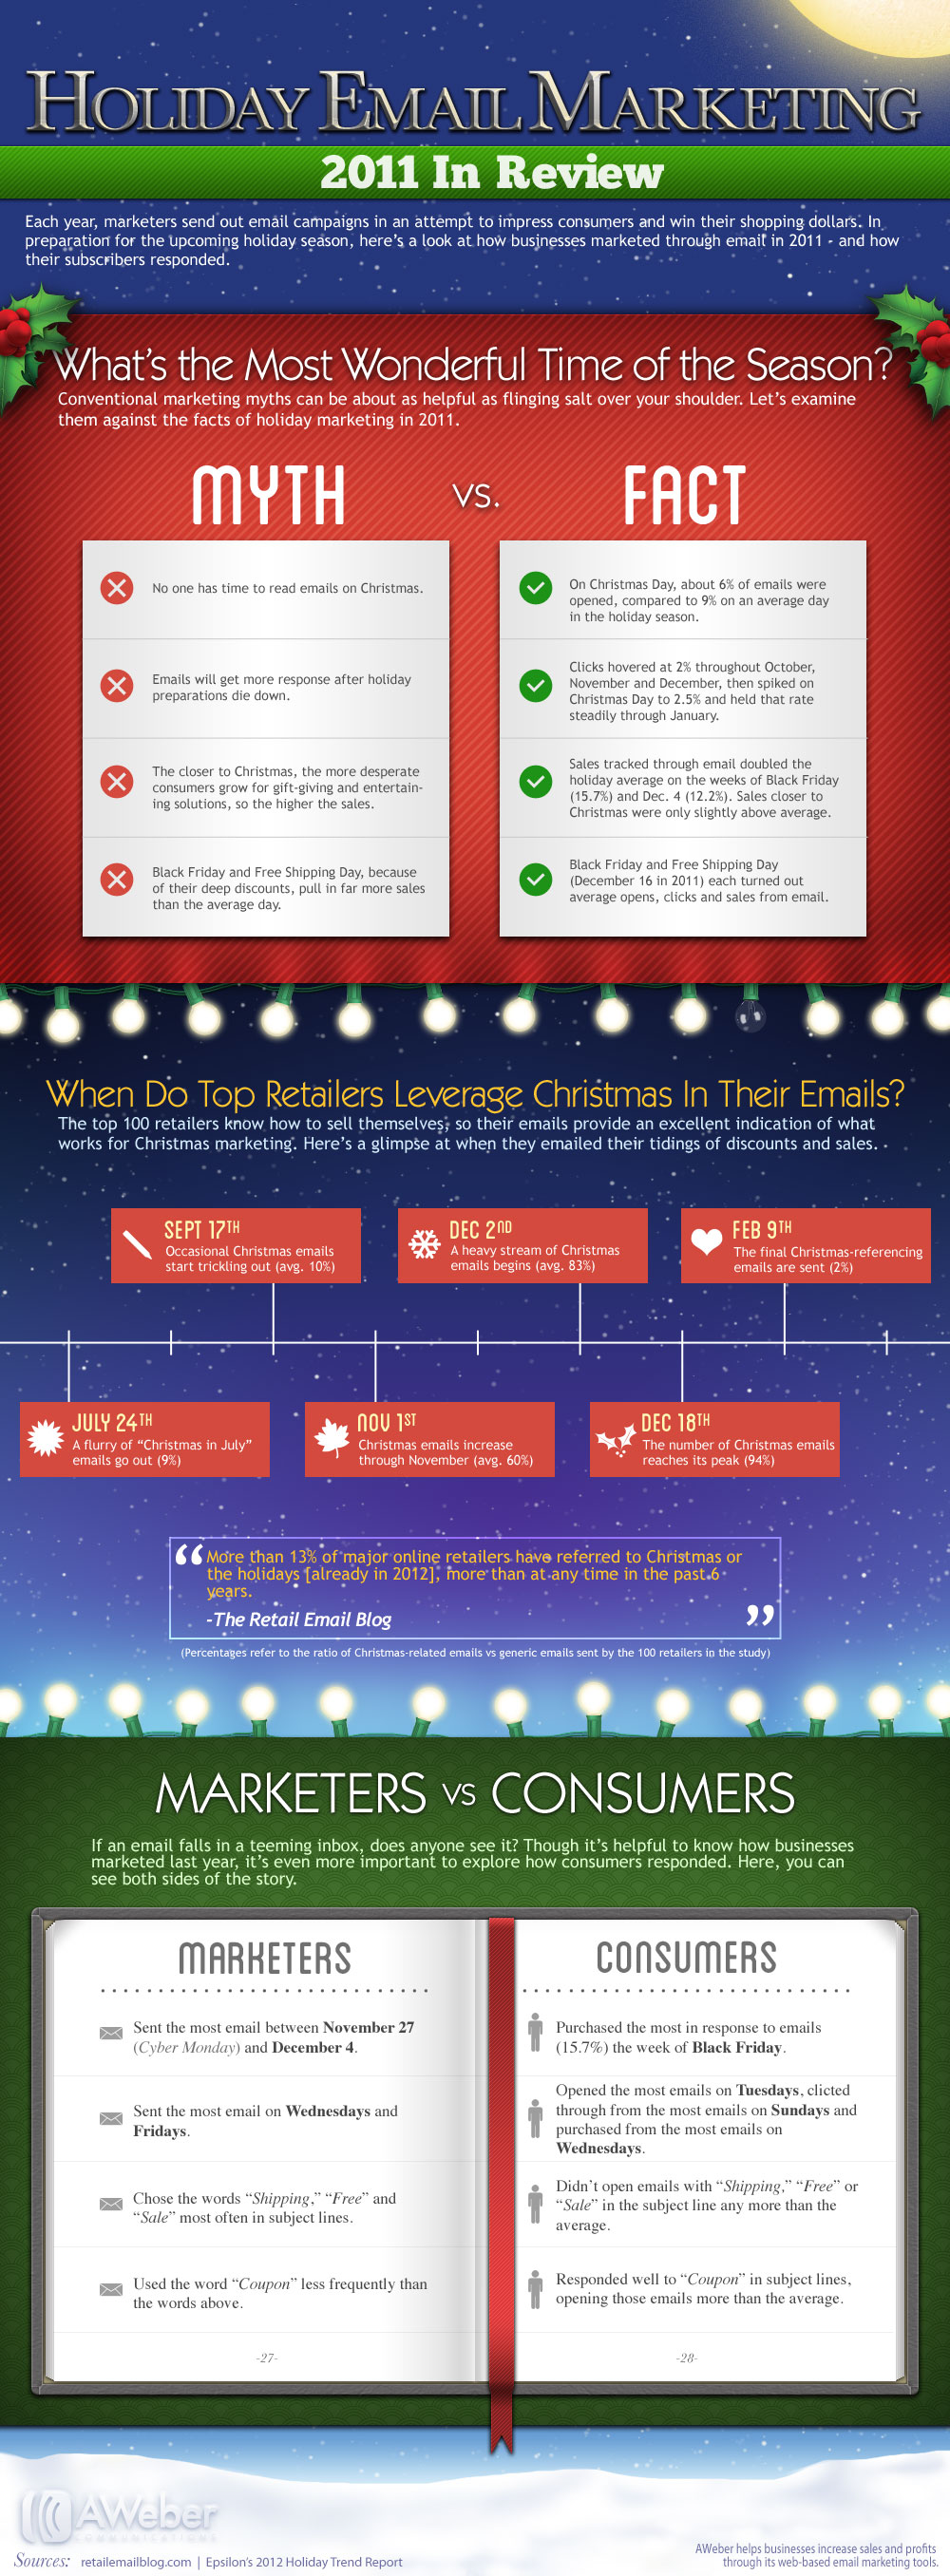 Christmas Email Marketing Tips-Infographic